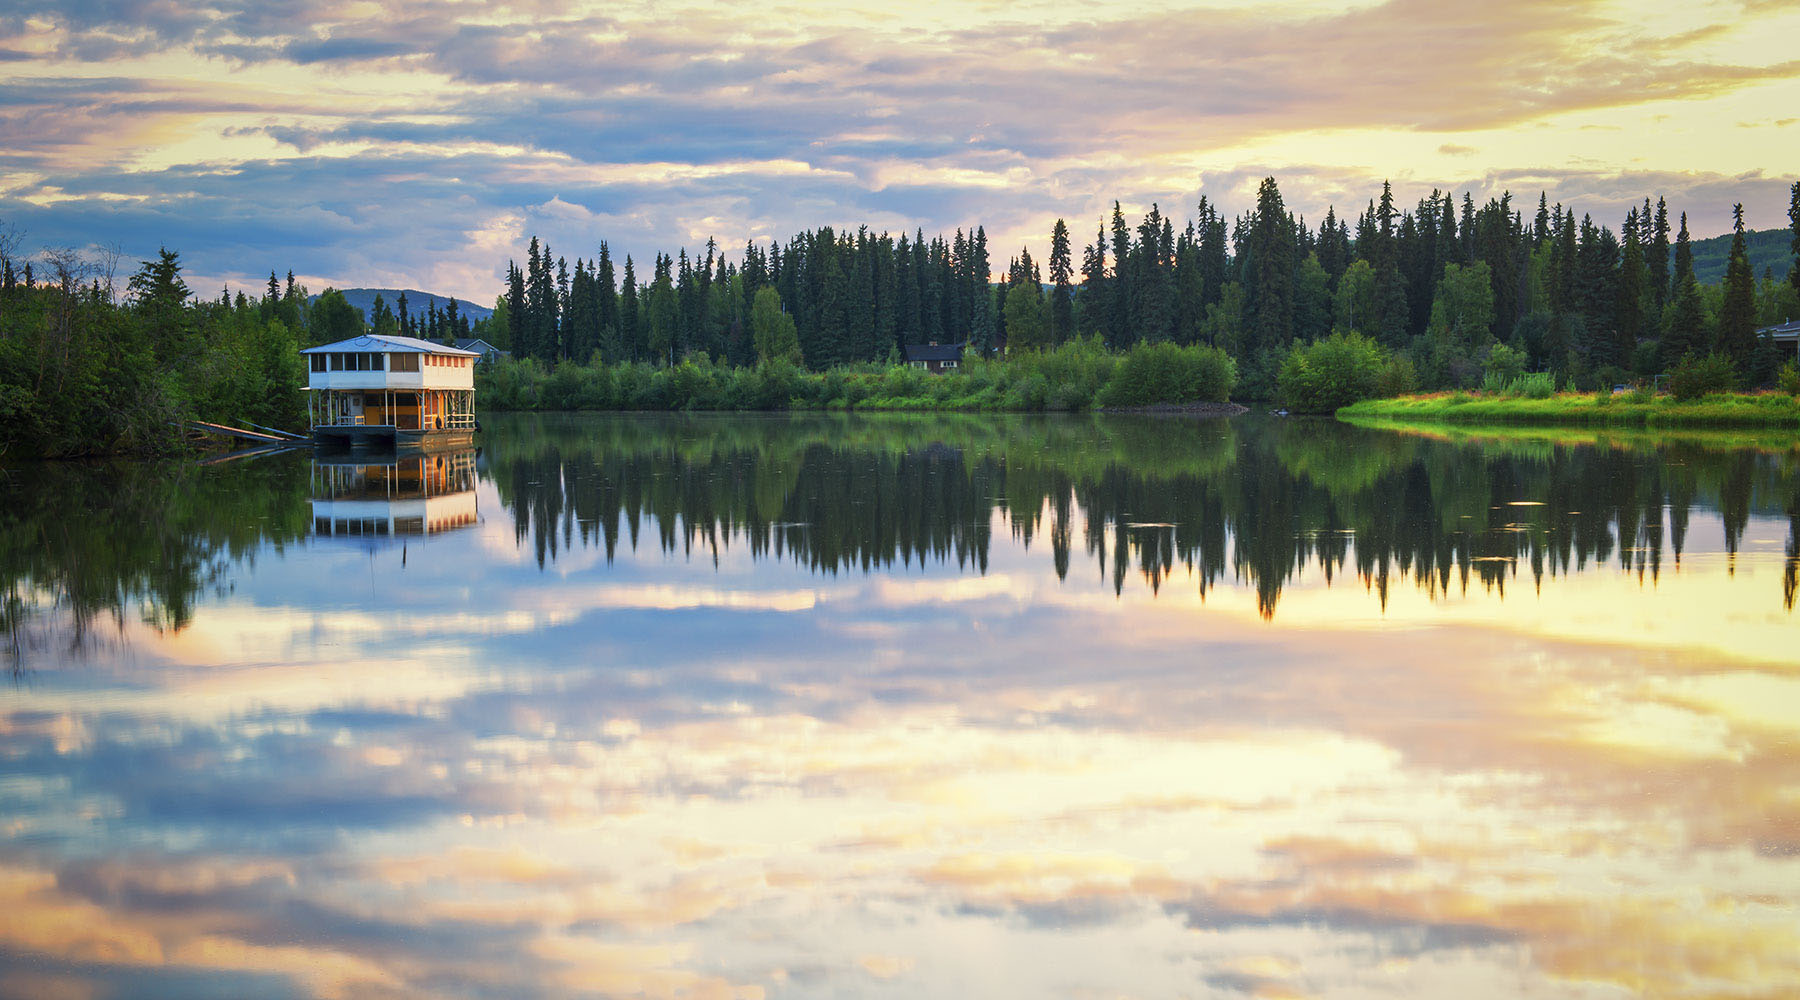 Native Village, Riverboat Cruise and Untamed Alaska (Pre-Voyage)